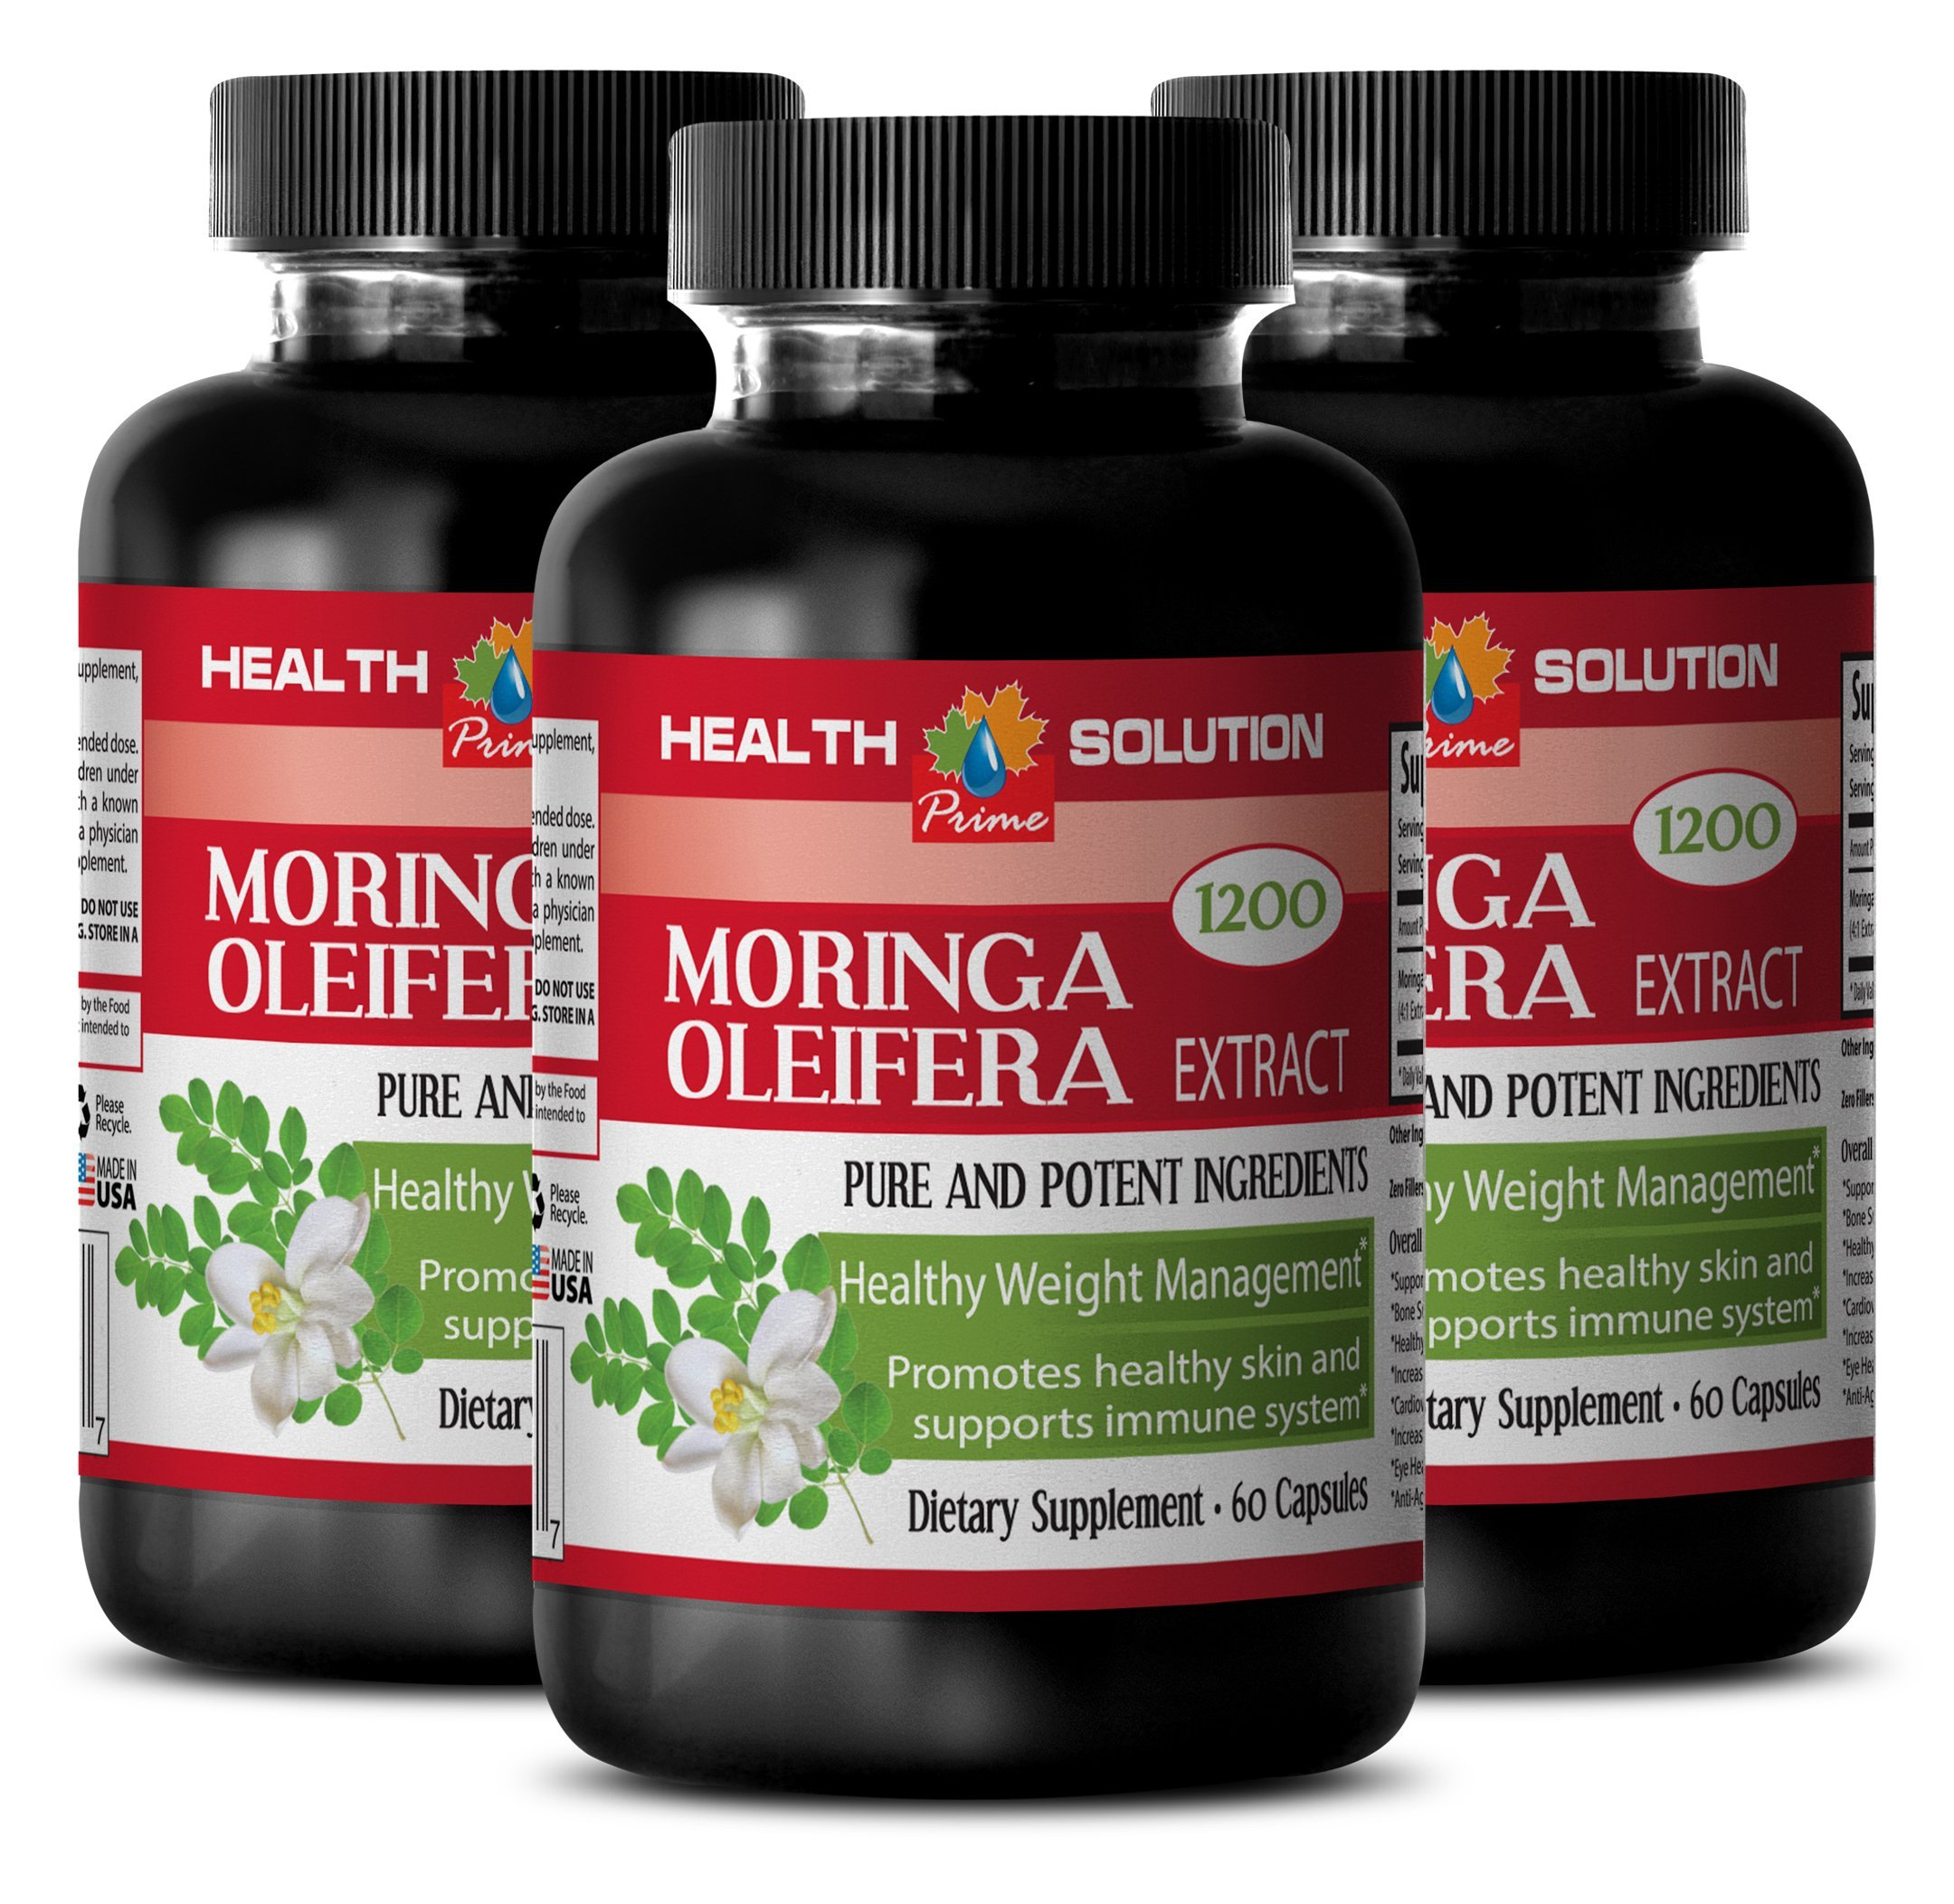 Moringa Organic Powder - MORINGA OLEIFERA EXTRACT 1200 - Pure Skin Clarifying Dietary Supplement 3 Bottles, 180 Capsules by Health Solution Prime (Image #1)